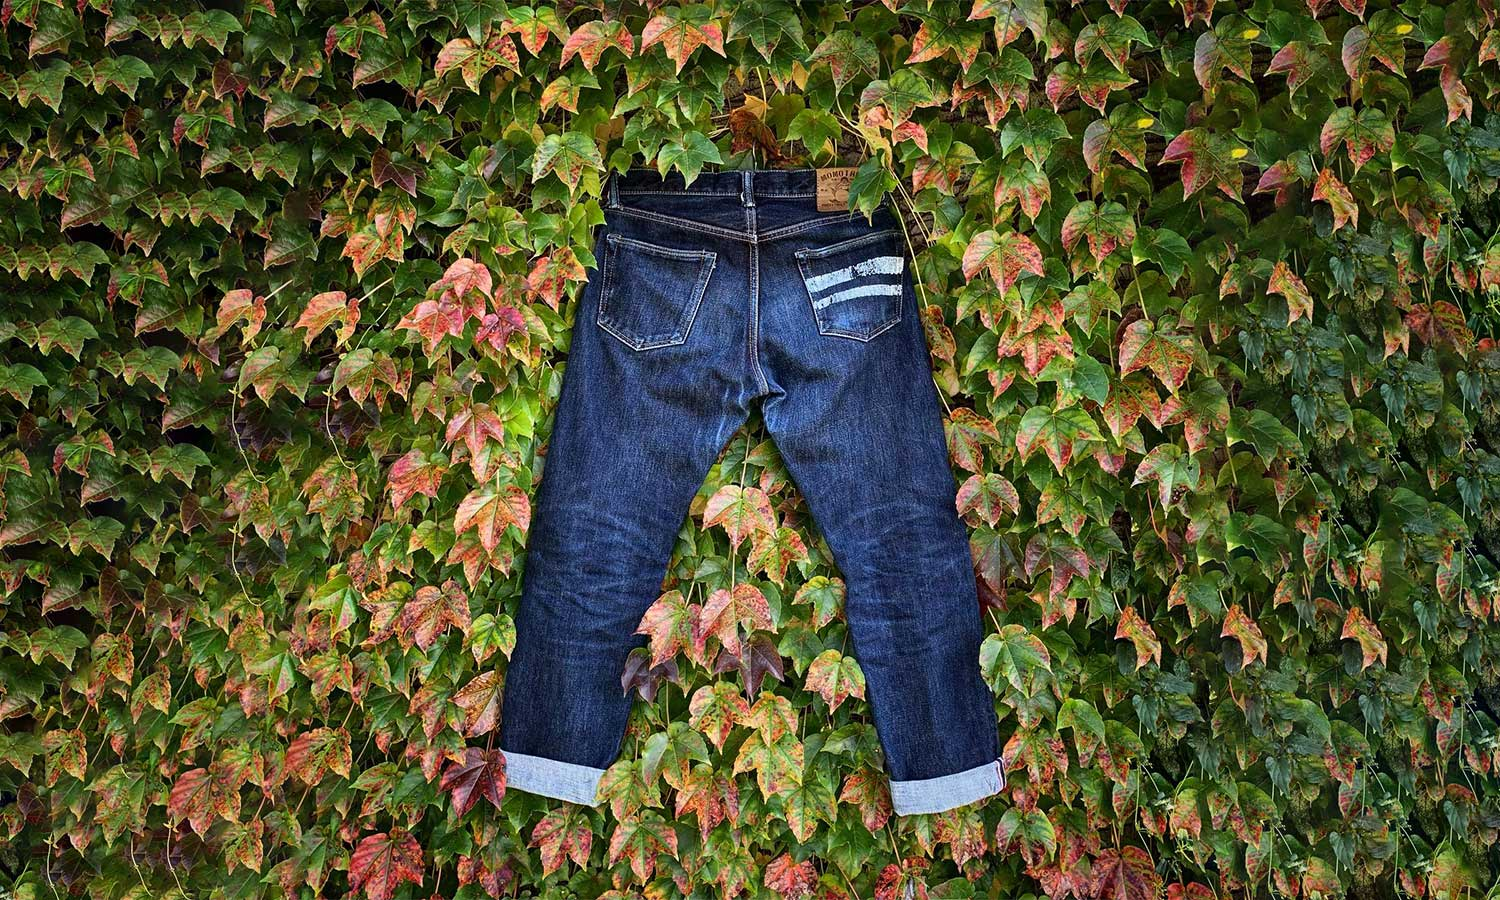 Jeans with two white stripes on its right pocket placed on a bed of leaves